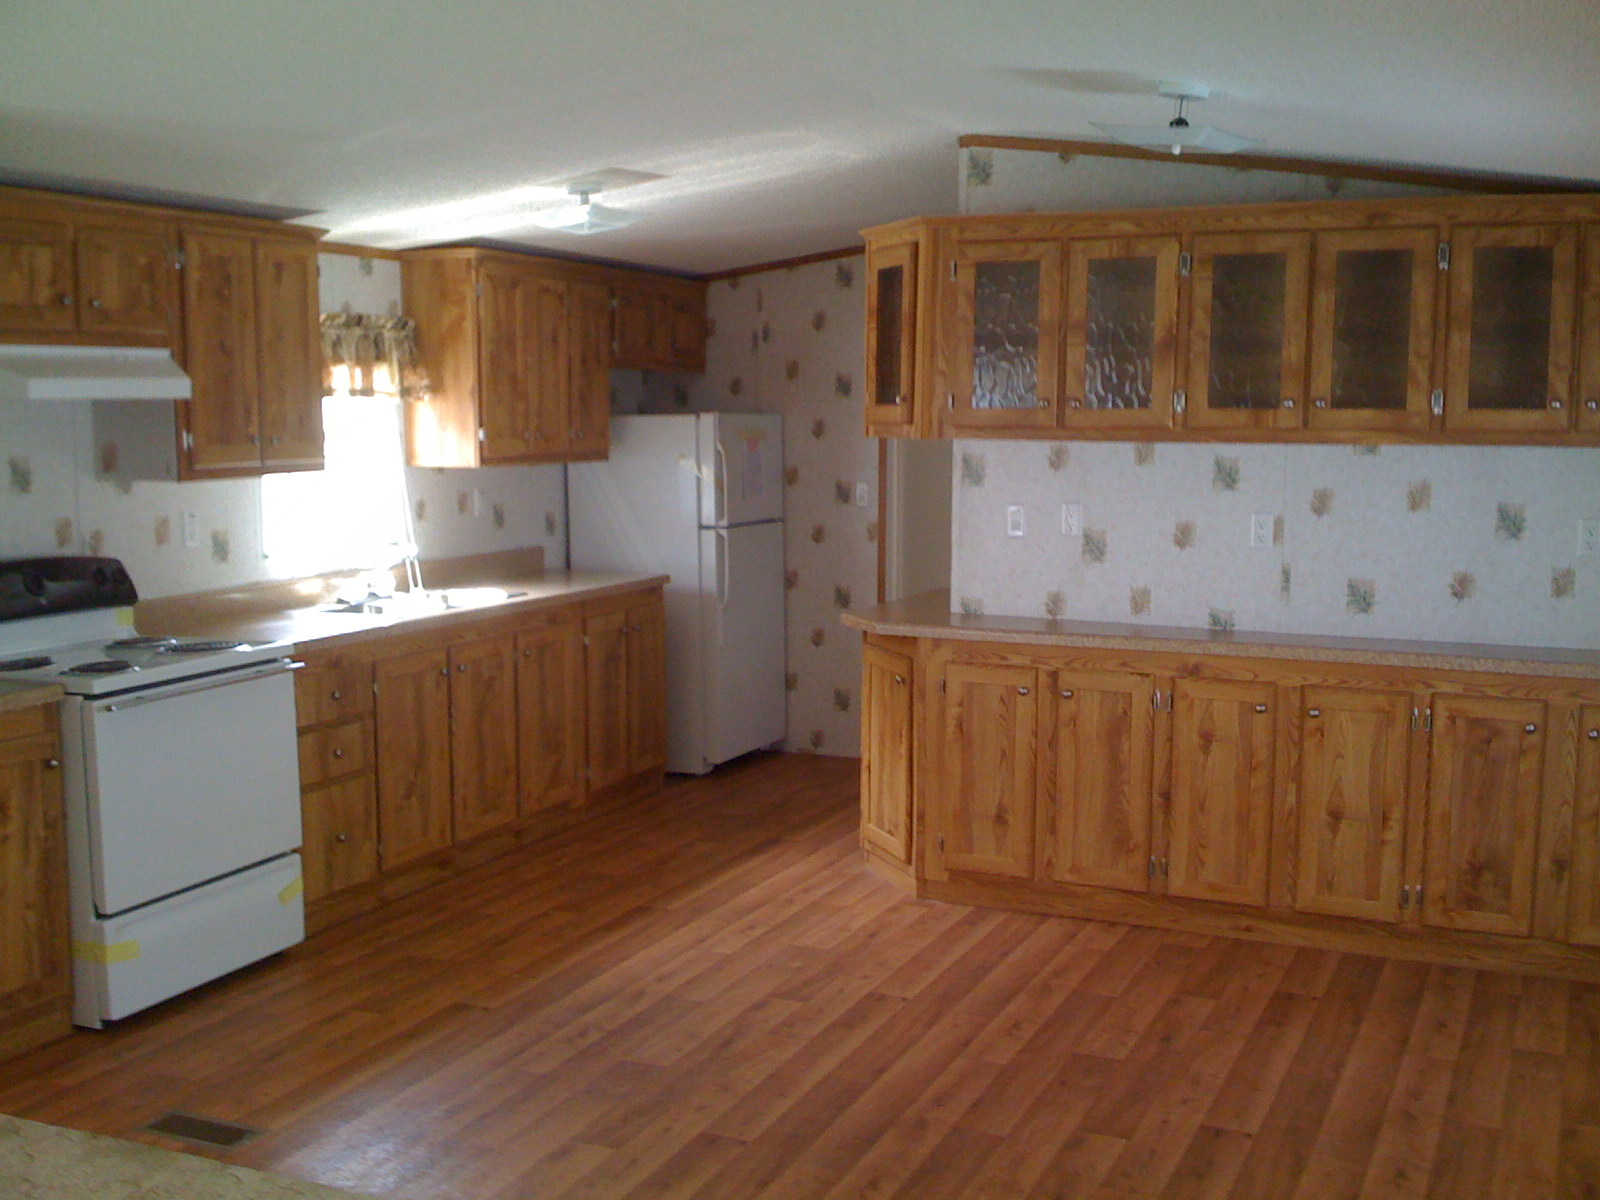 Mobile homes kitchen designs joy studio design gallery best design - Mobile homes kitchen designs ideas ...